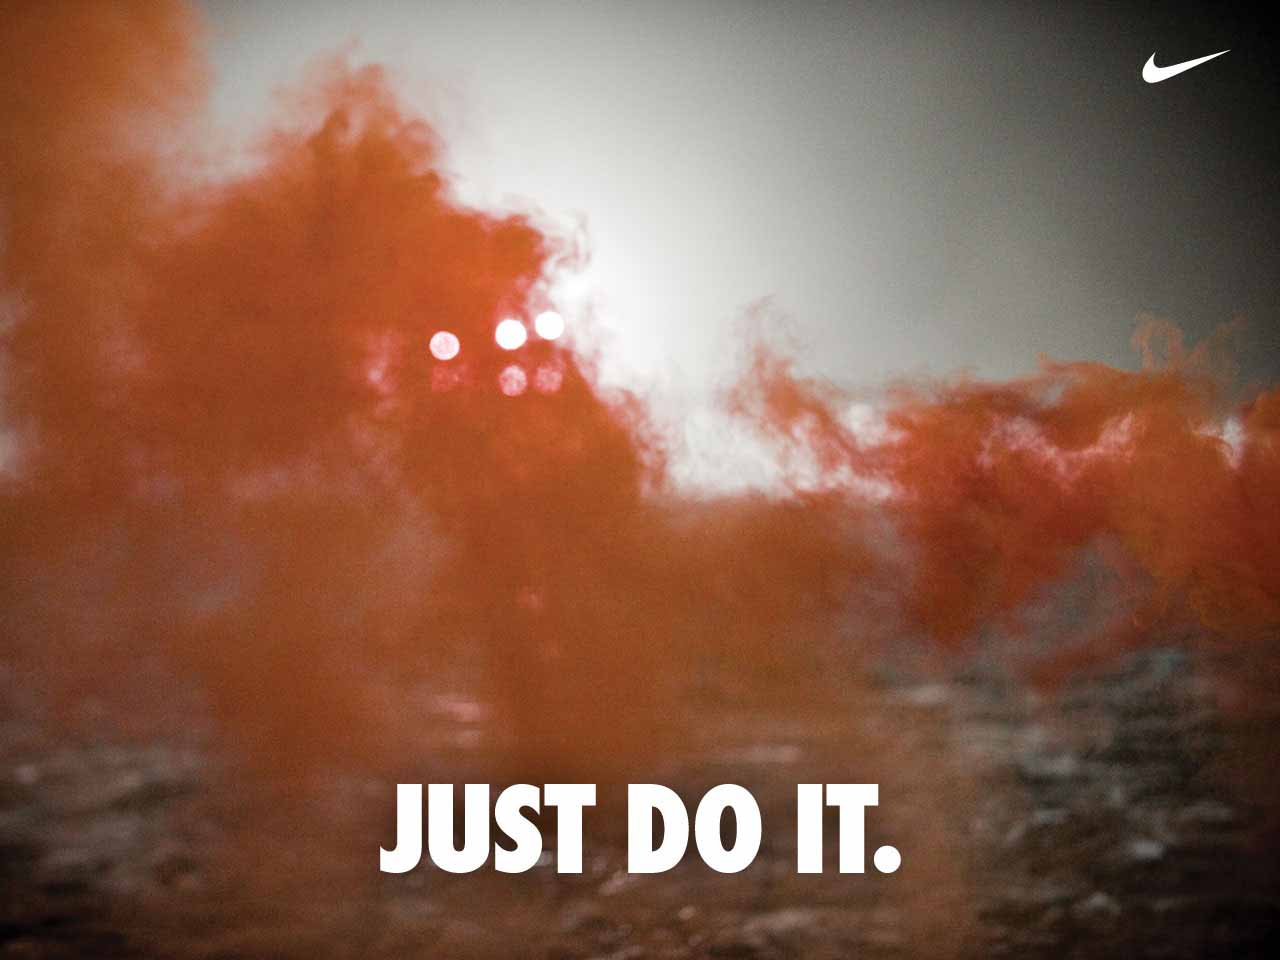 nike just do it wallpaper - photo #20